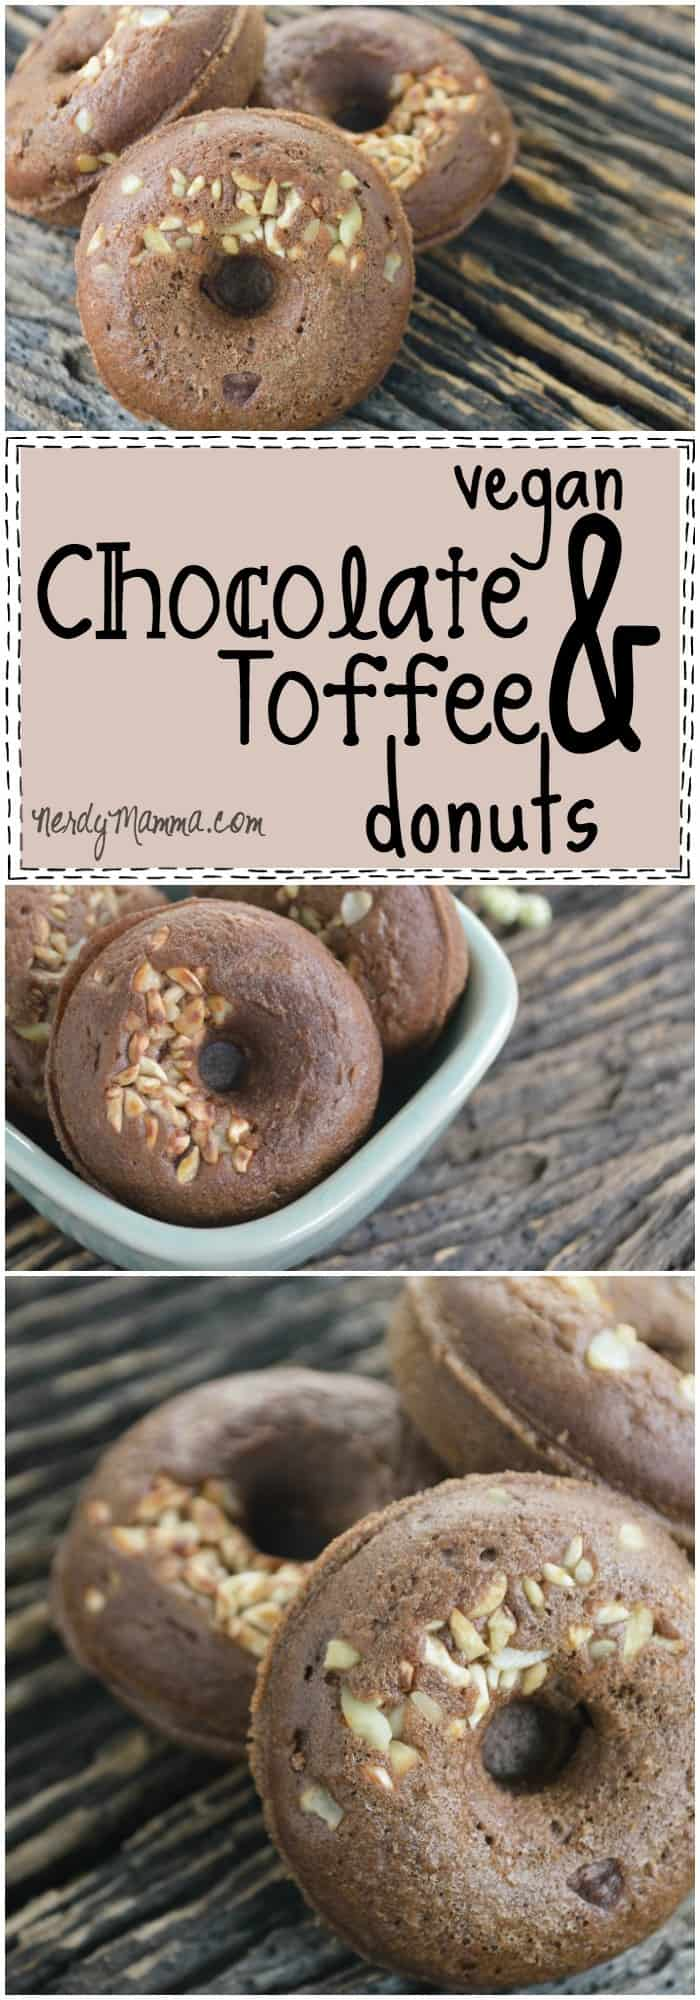 This recipe for these vegan chocolate and toffee donuts are to die for! I will not share. Nope. These are my eggless and dairy-free donuts. End. Of. Story. Heh.